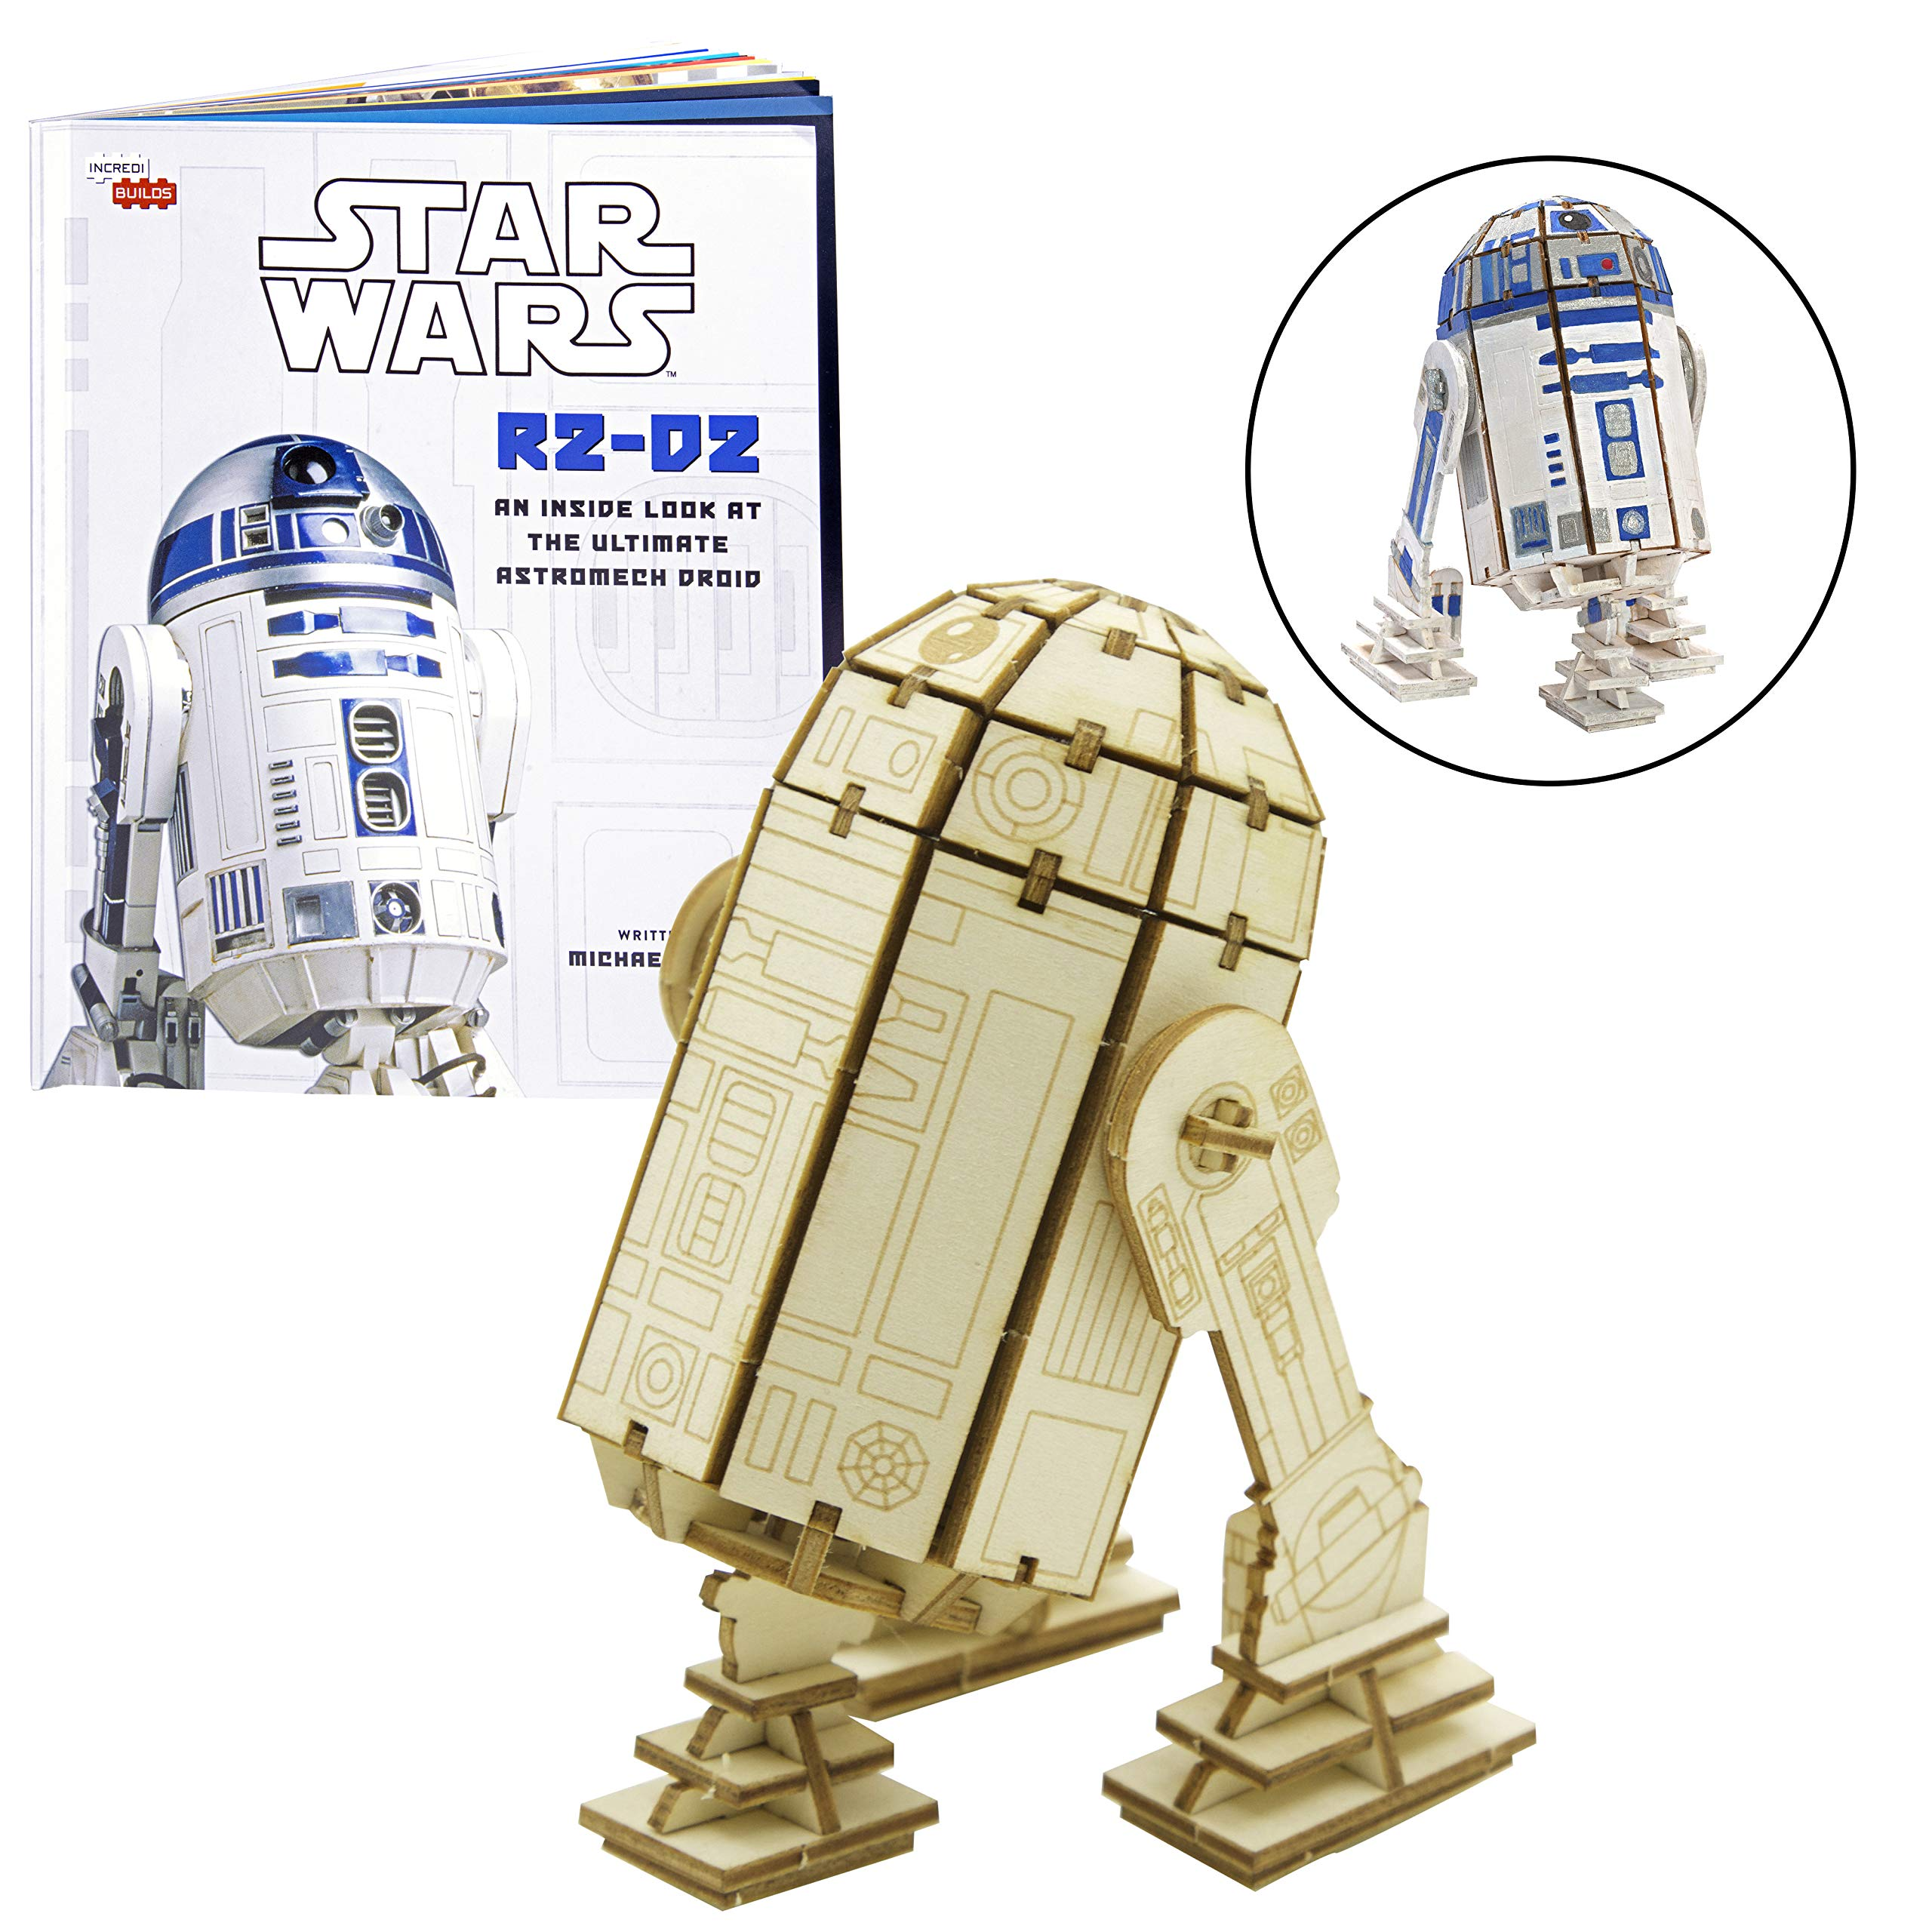 Star Wars R2-D2 Book and Wood Model Figure Kit - Build, Paint and Collect Your Own 3-D Wooden Toy Model - Ages, 12+